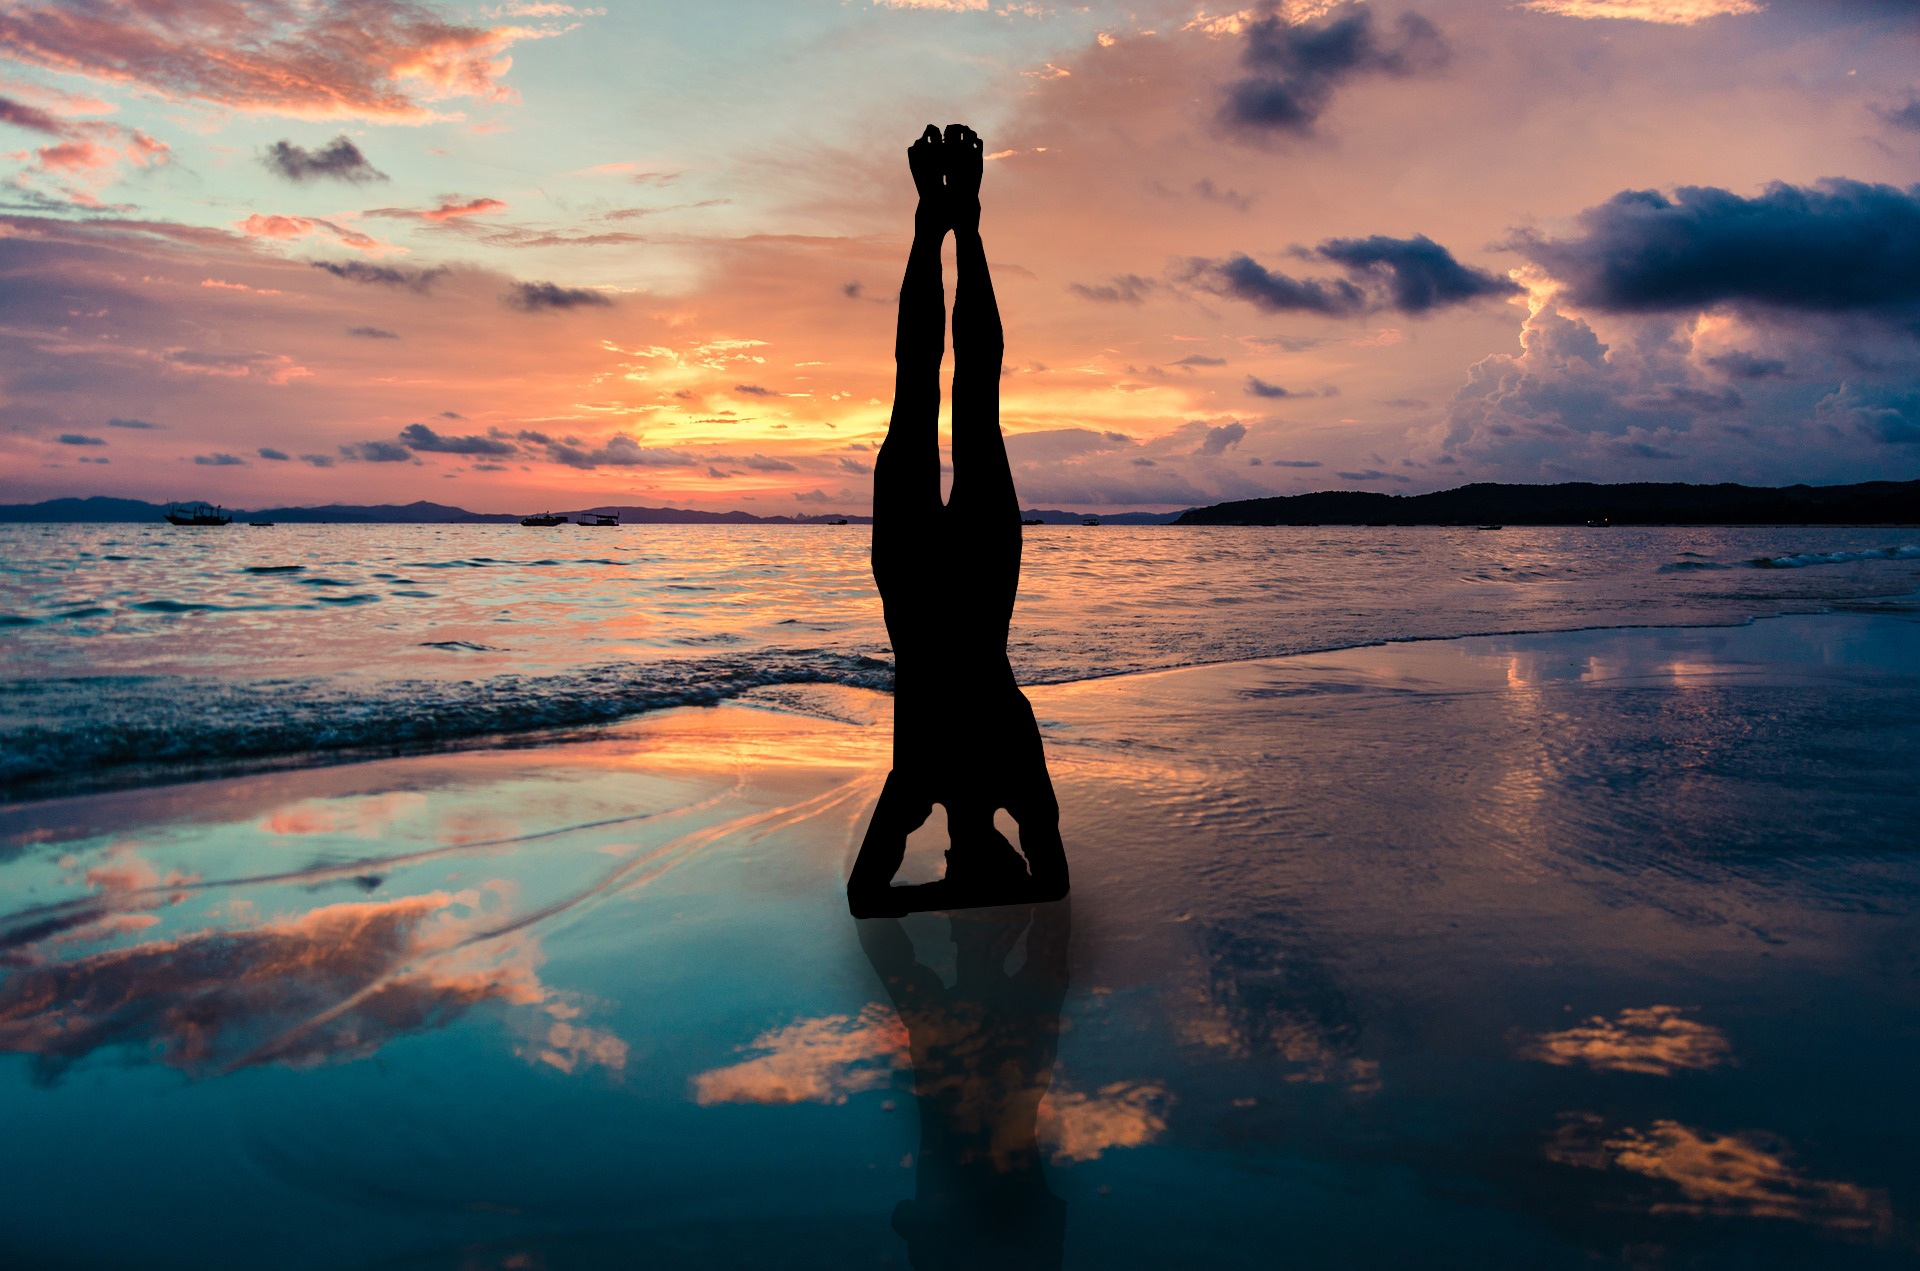 yoga_stand_in_hands_silhouette_2149407.jpg